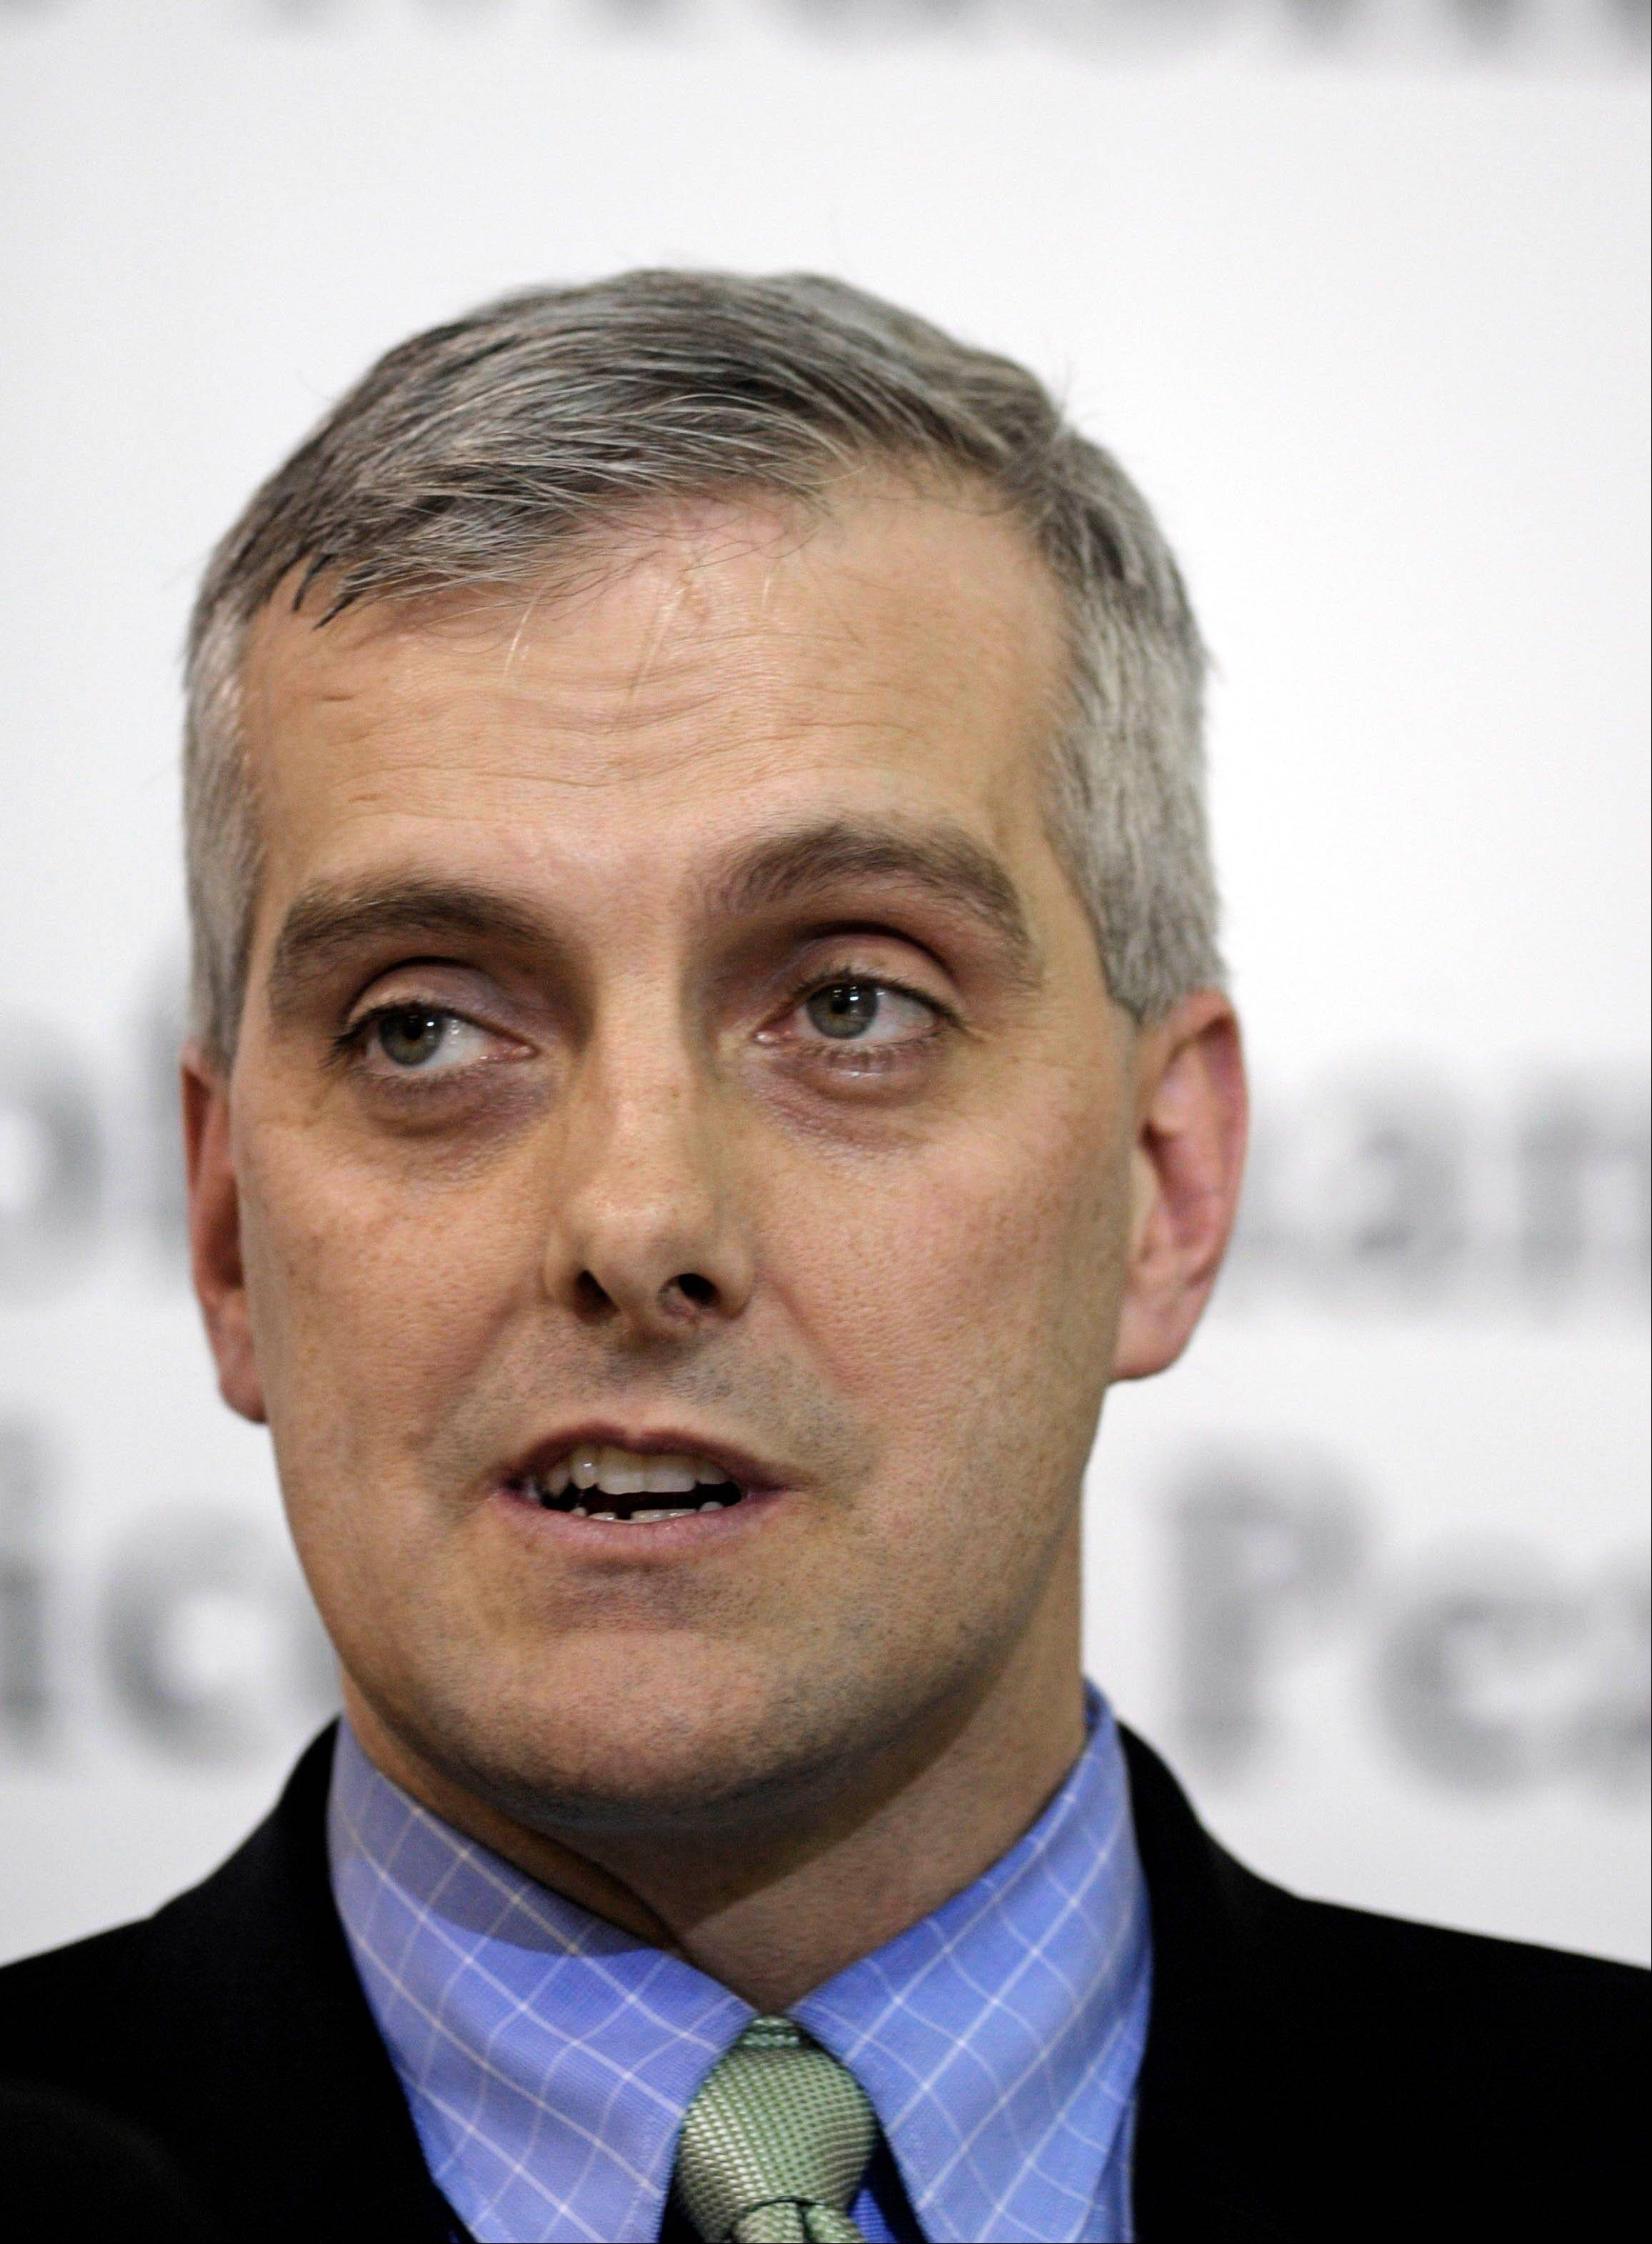 People familiar with White House thinking say President Barack Obama is likely to name top national security aide Denis McDonough as his next chief of staff, Wednesday, Jan. 16, 2013.